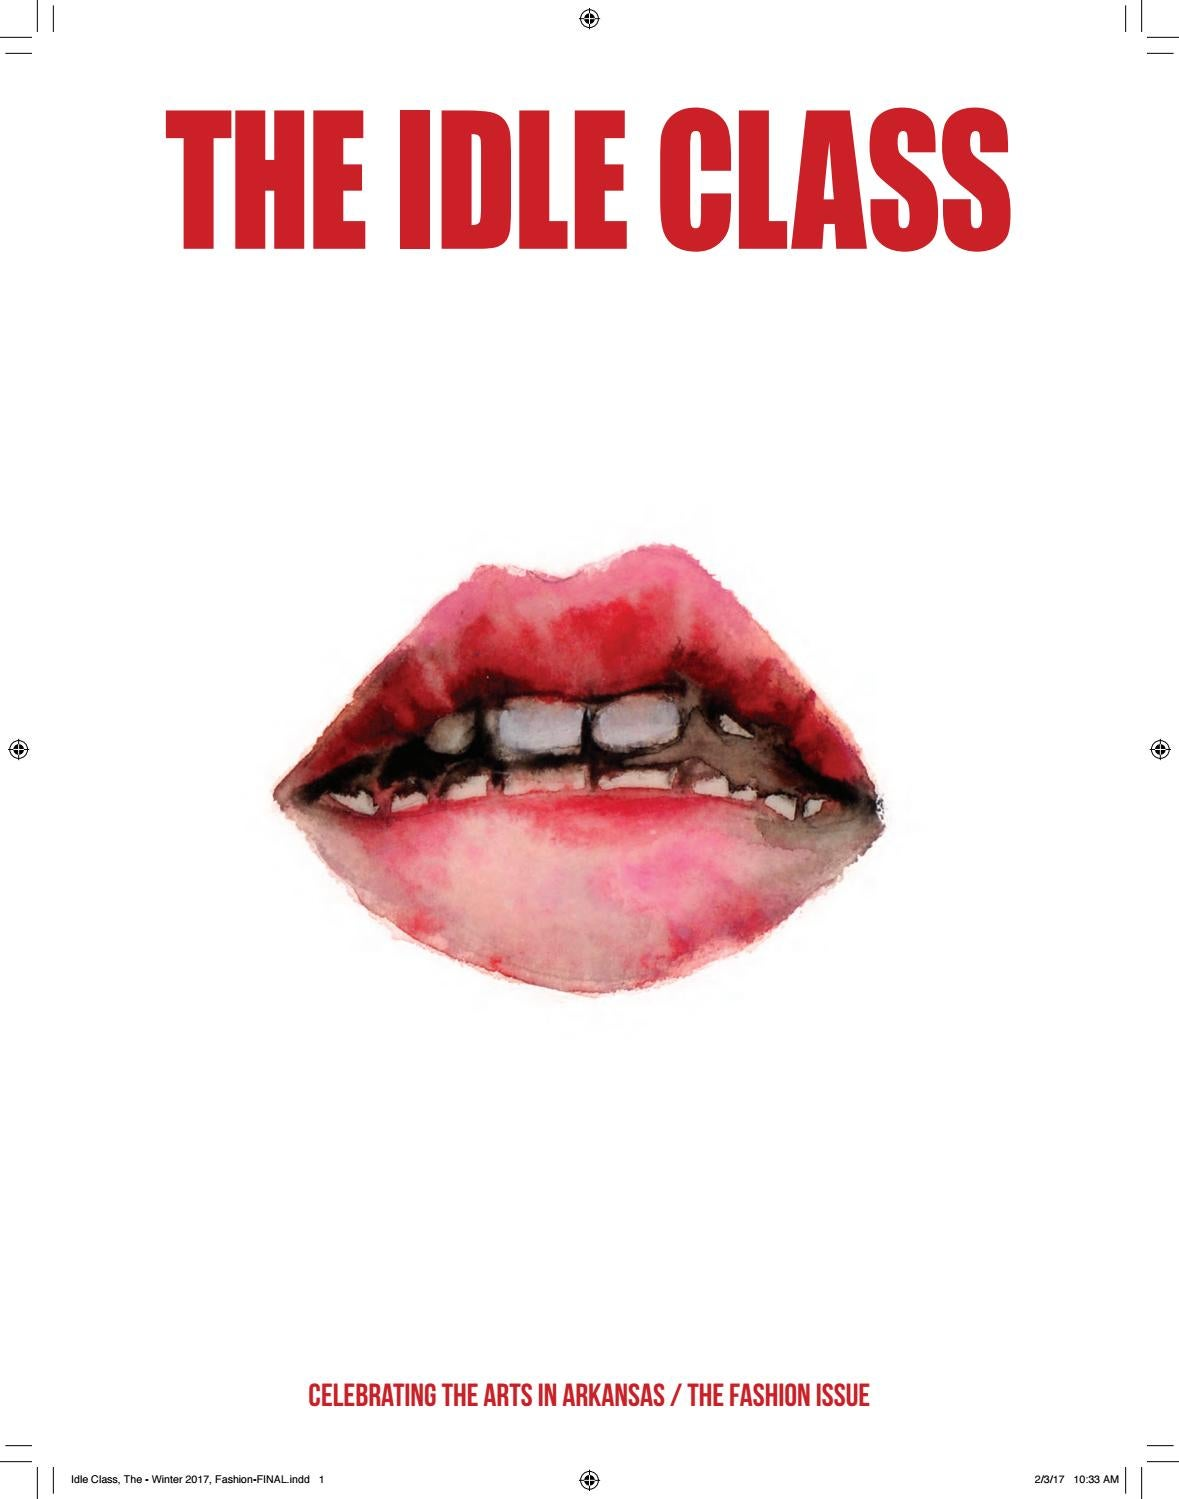 b0cbd73229 THE IDLE CLASS - FASHION ISSUE 2017 by The Idle Class - issuu